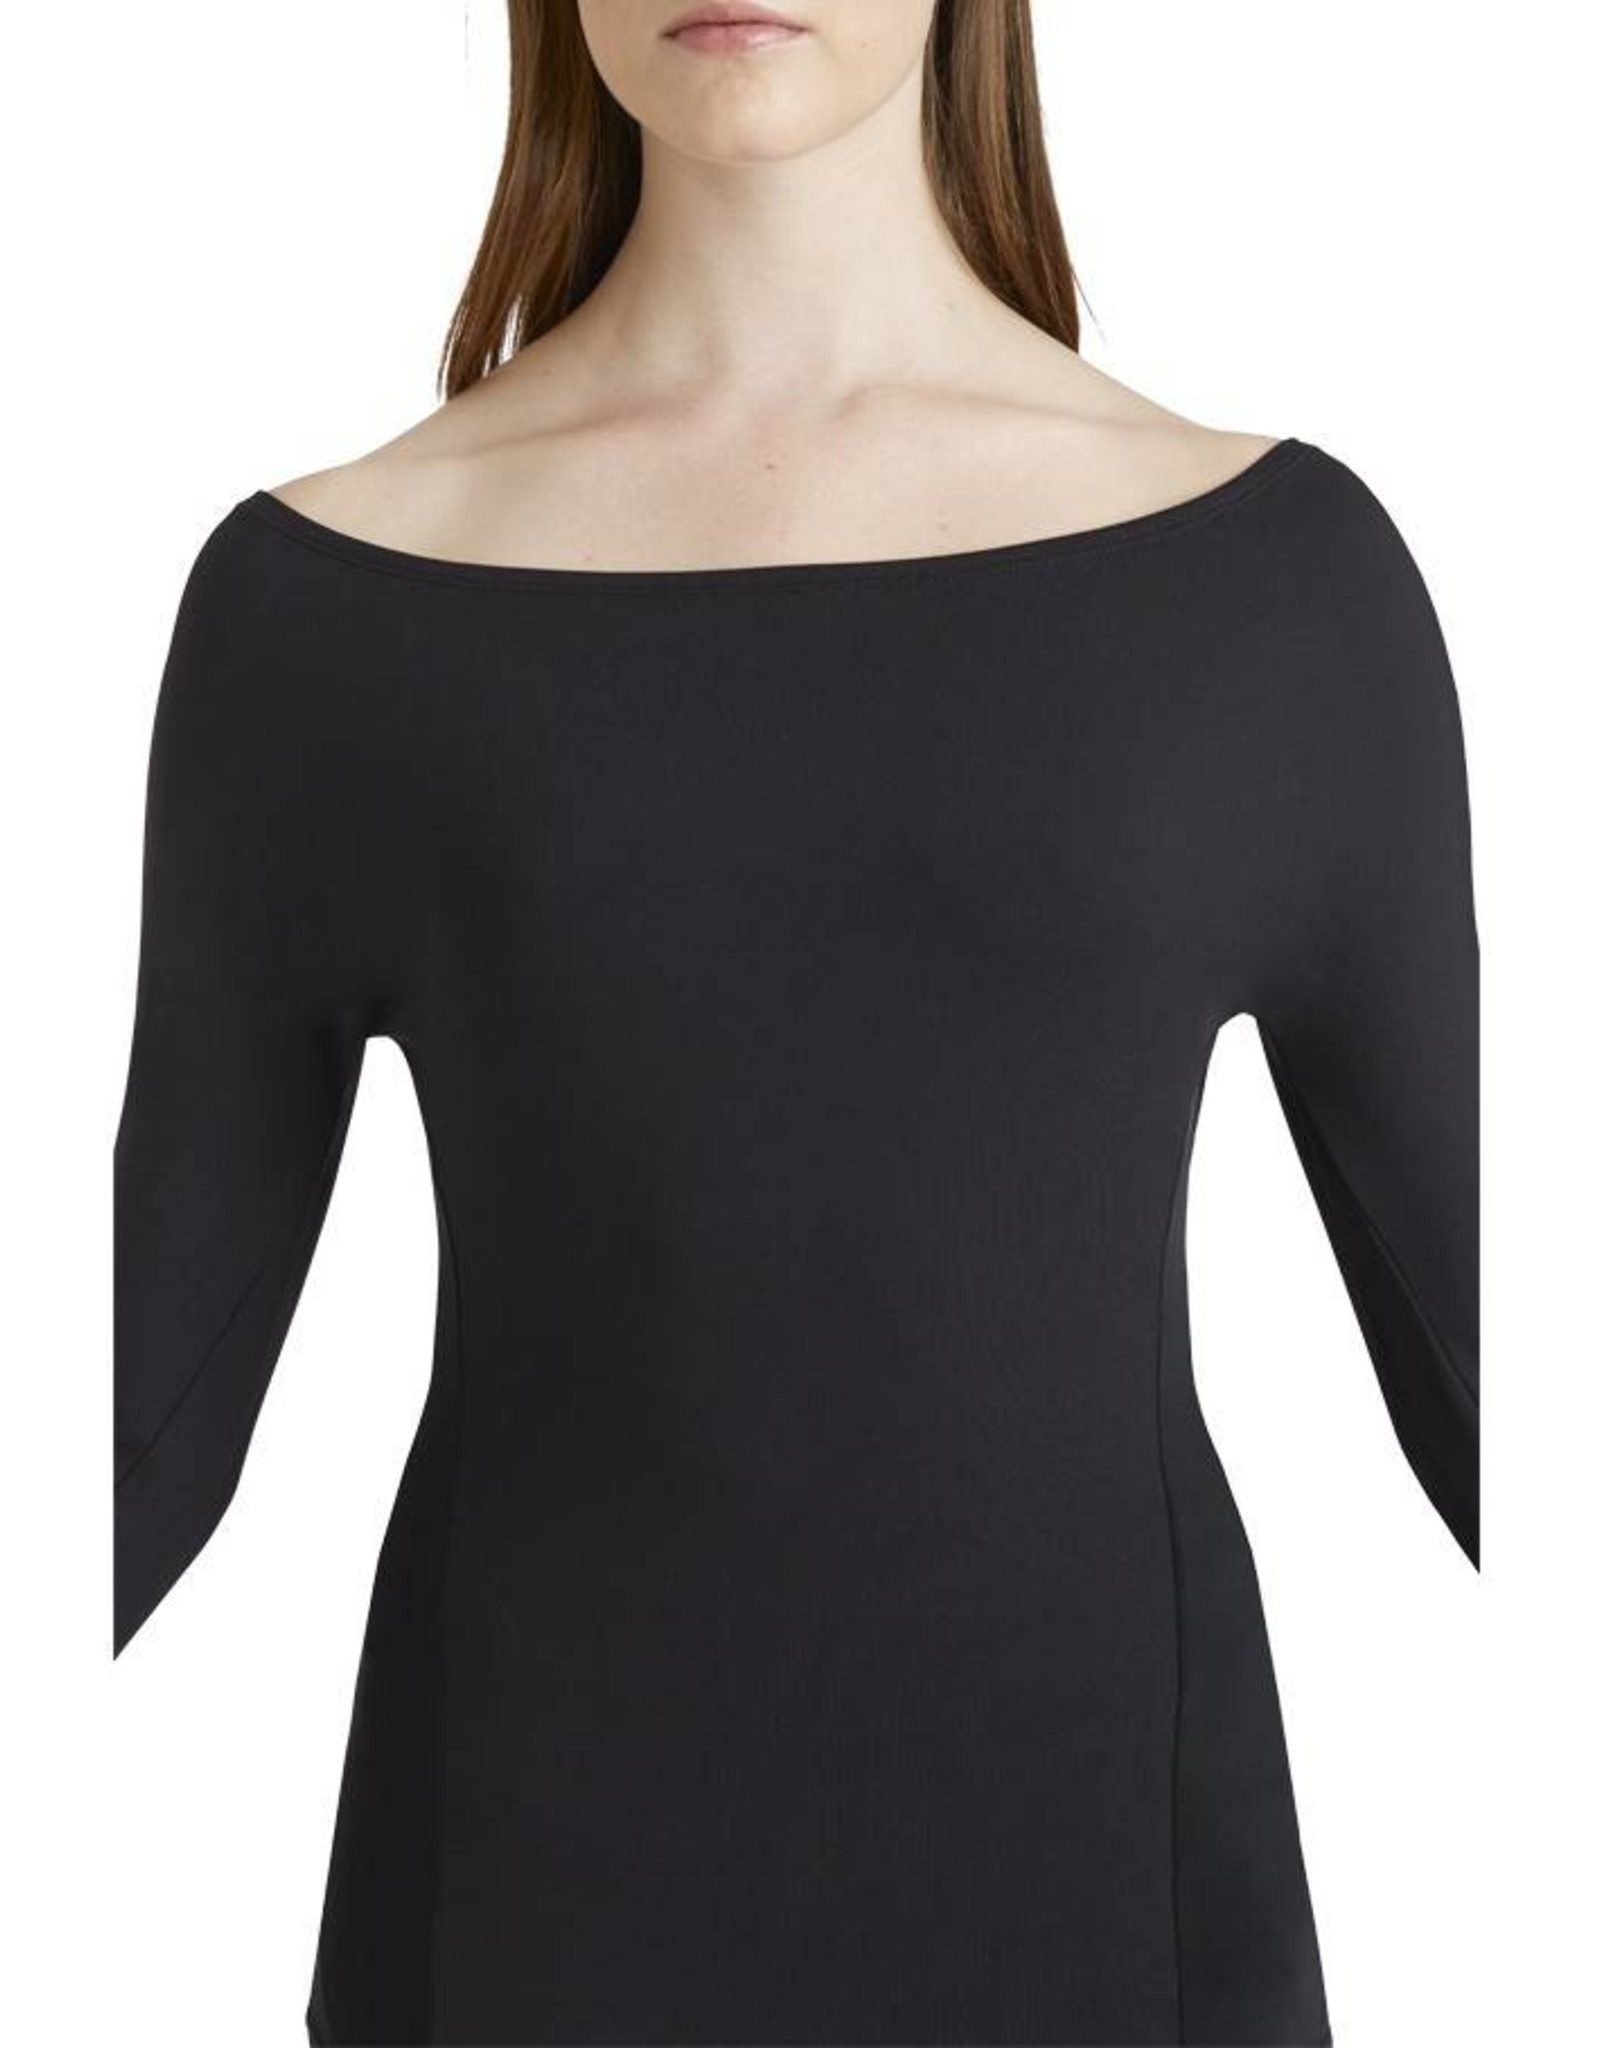 Capezio TC10903W Long Sleeve Top w/Sheer Inserts